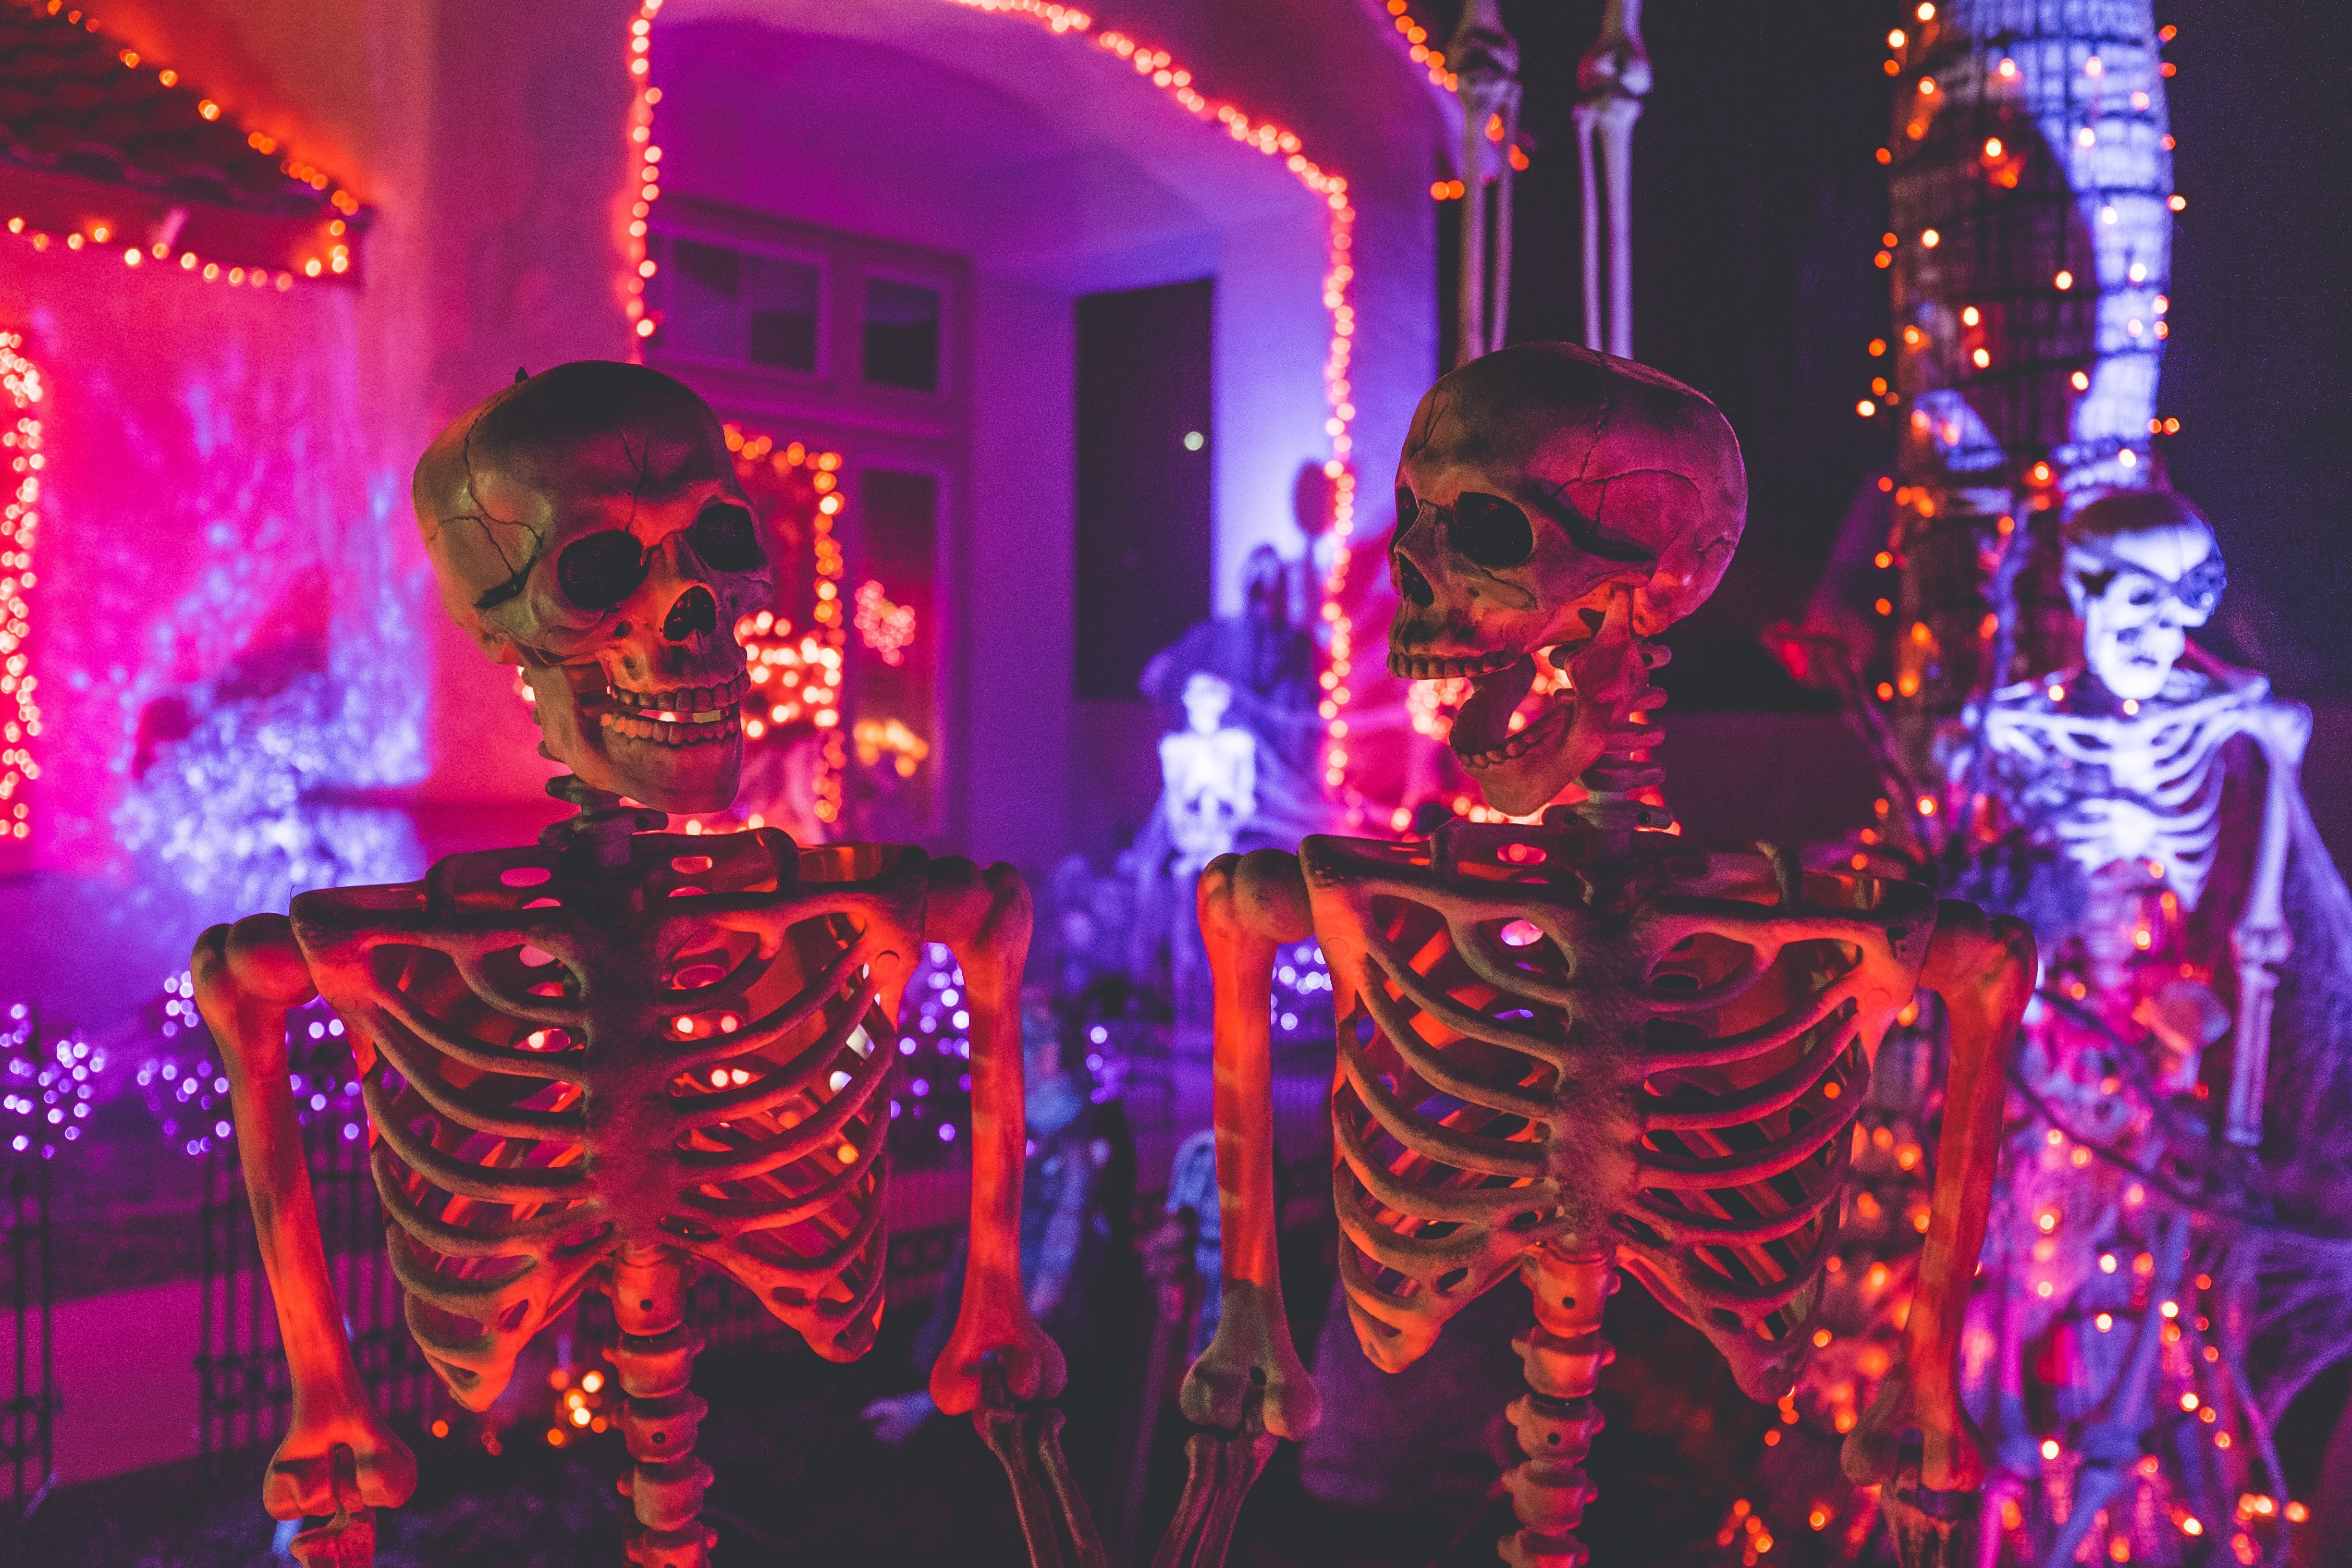 A stunning picture of Halloween decorations | Photo by NeONBRAND on Unsplash